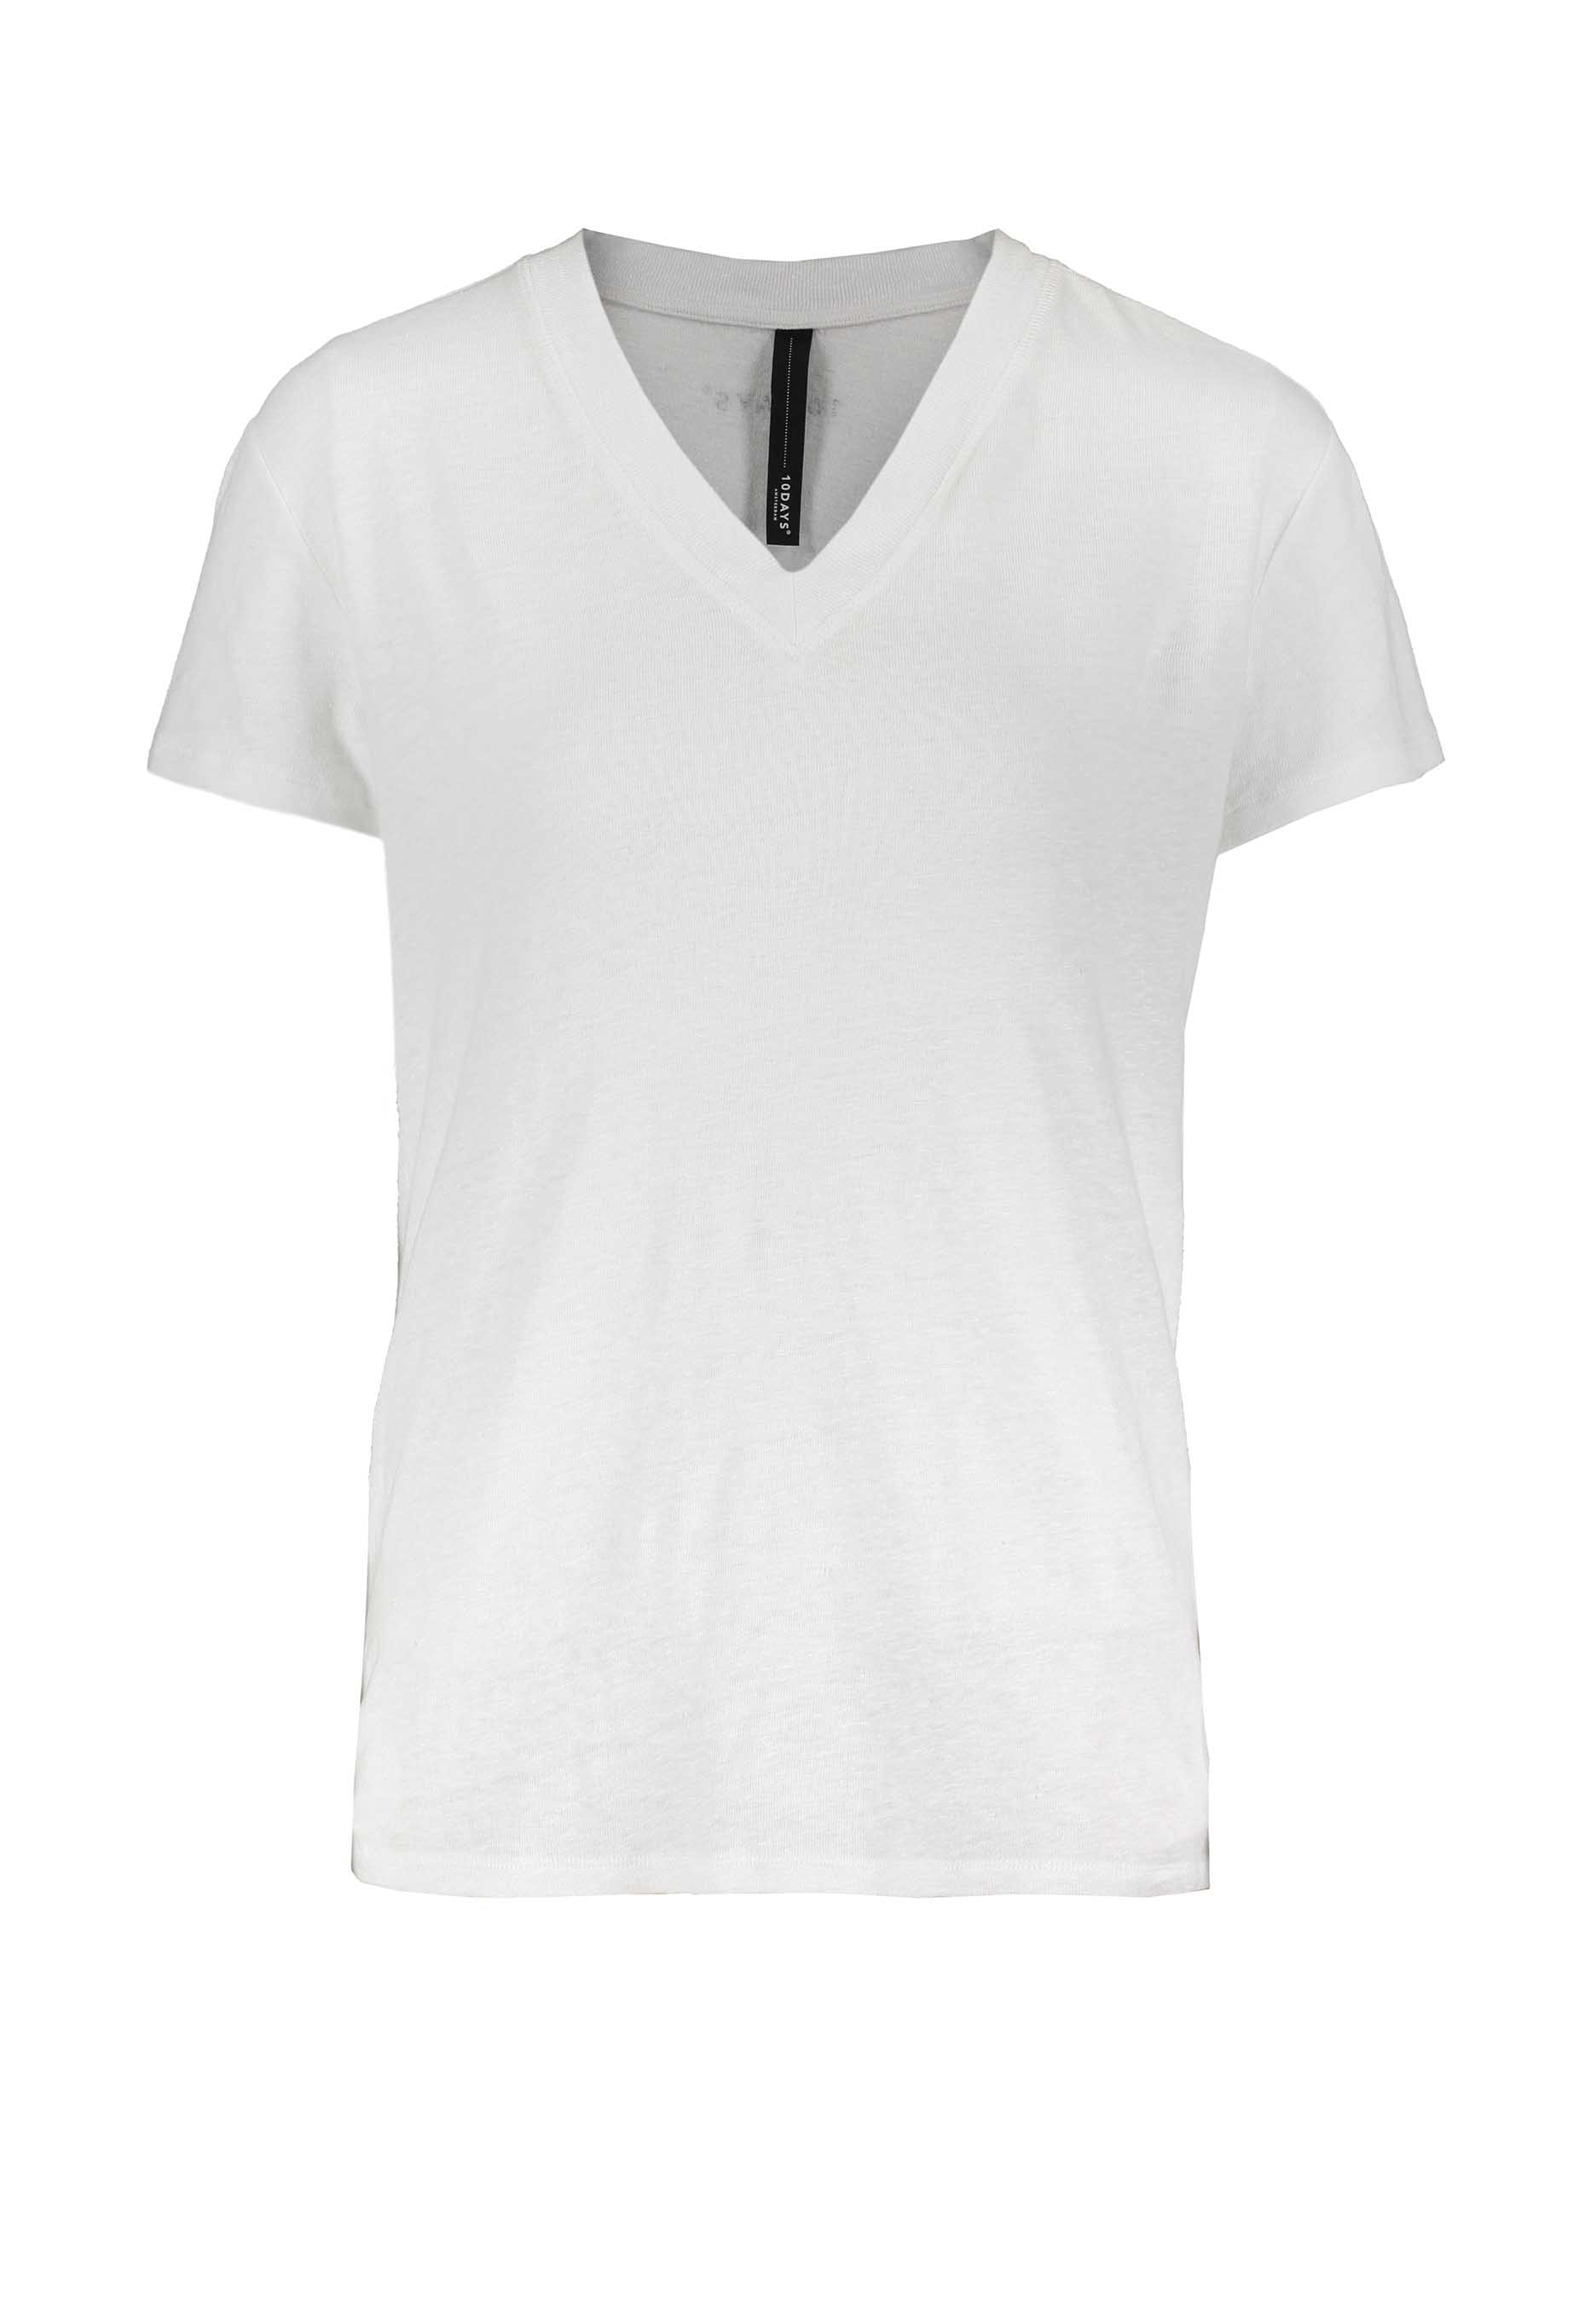 10DAYS V-neck T-shirt